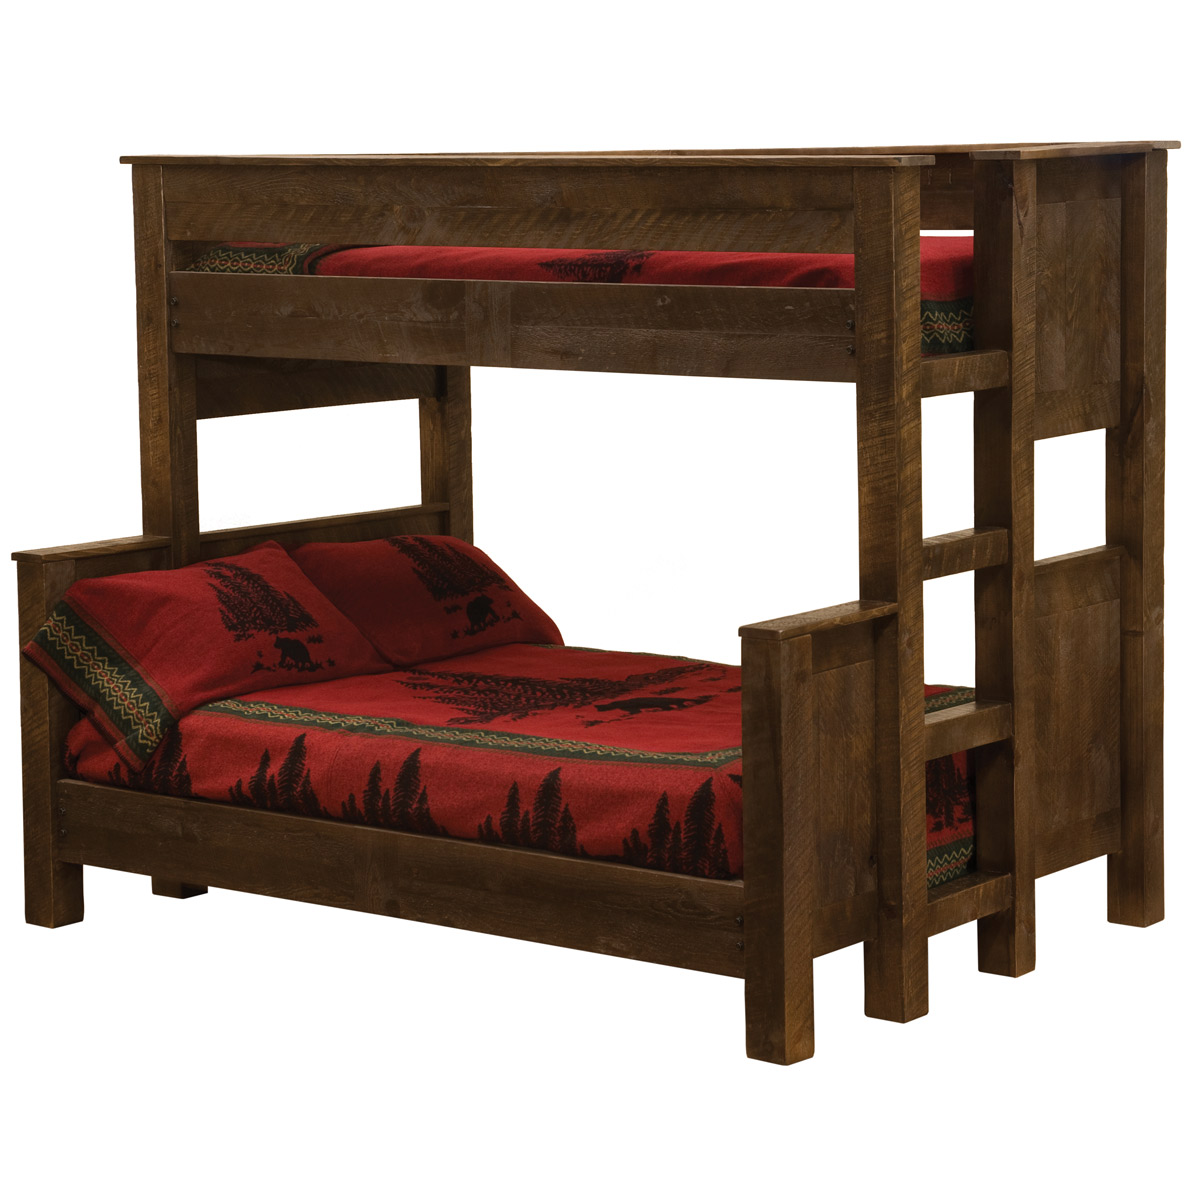 Black Forest Decor Frontier bunk bed - queen/twin